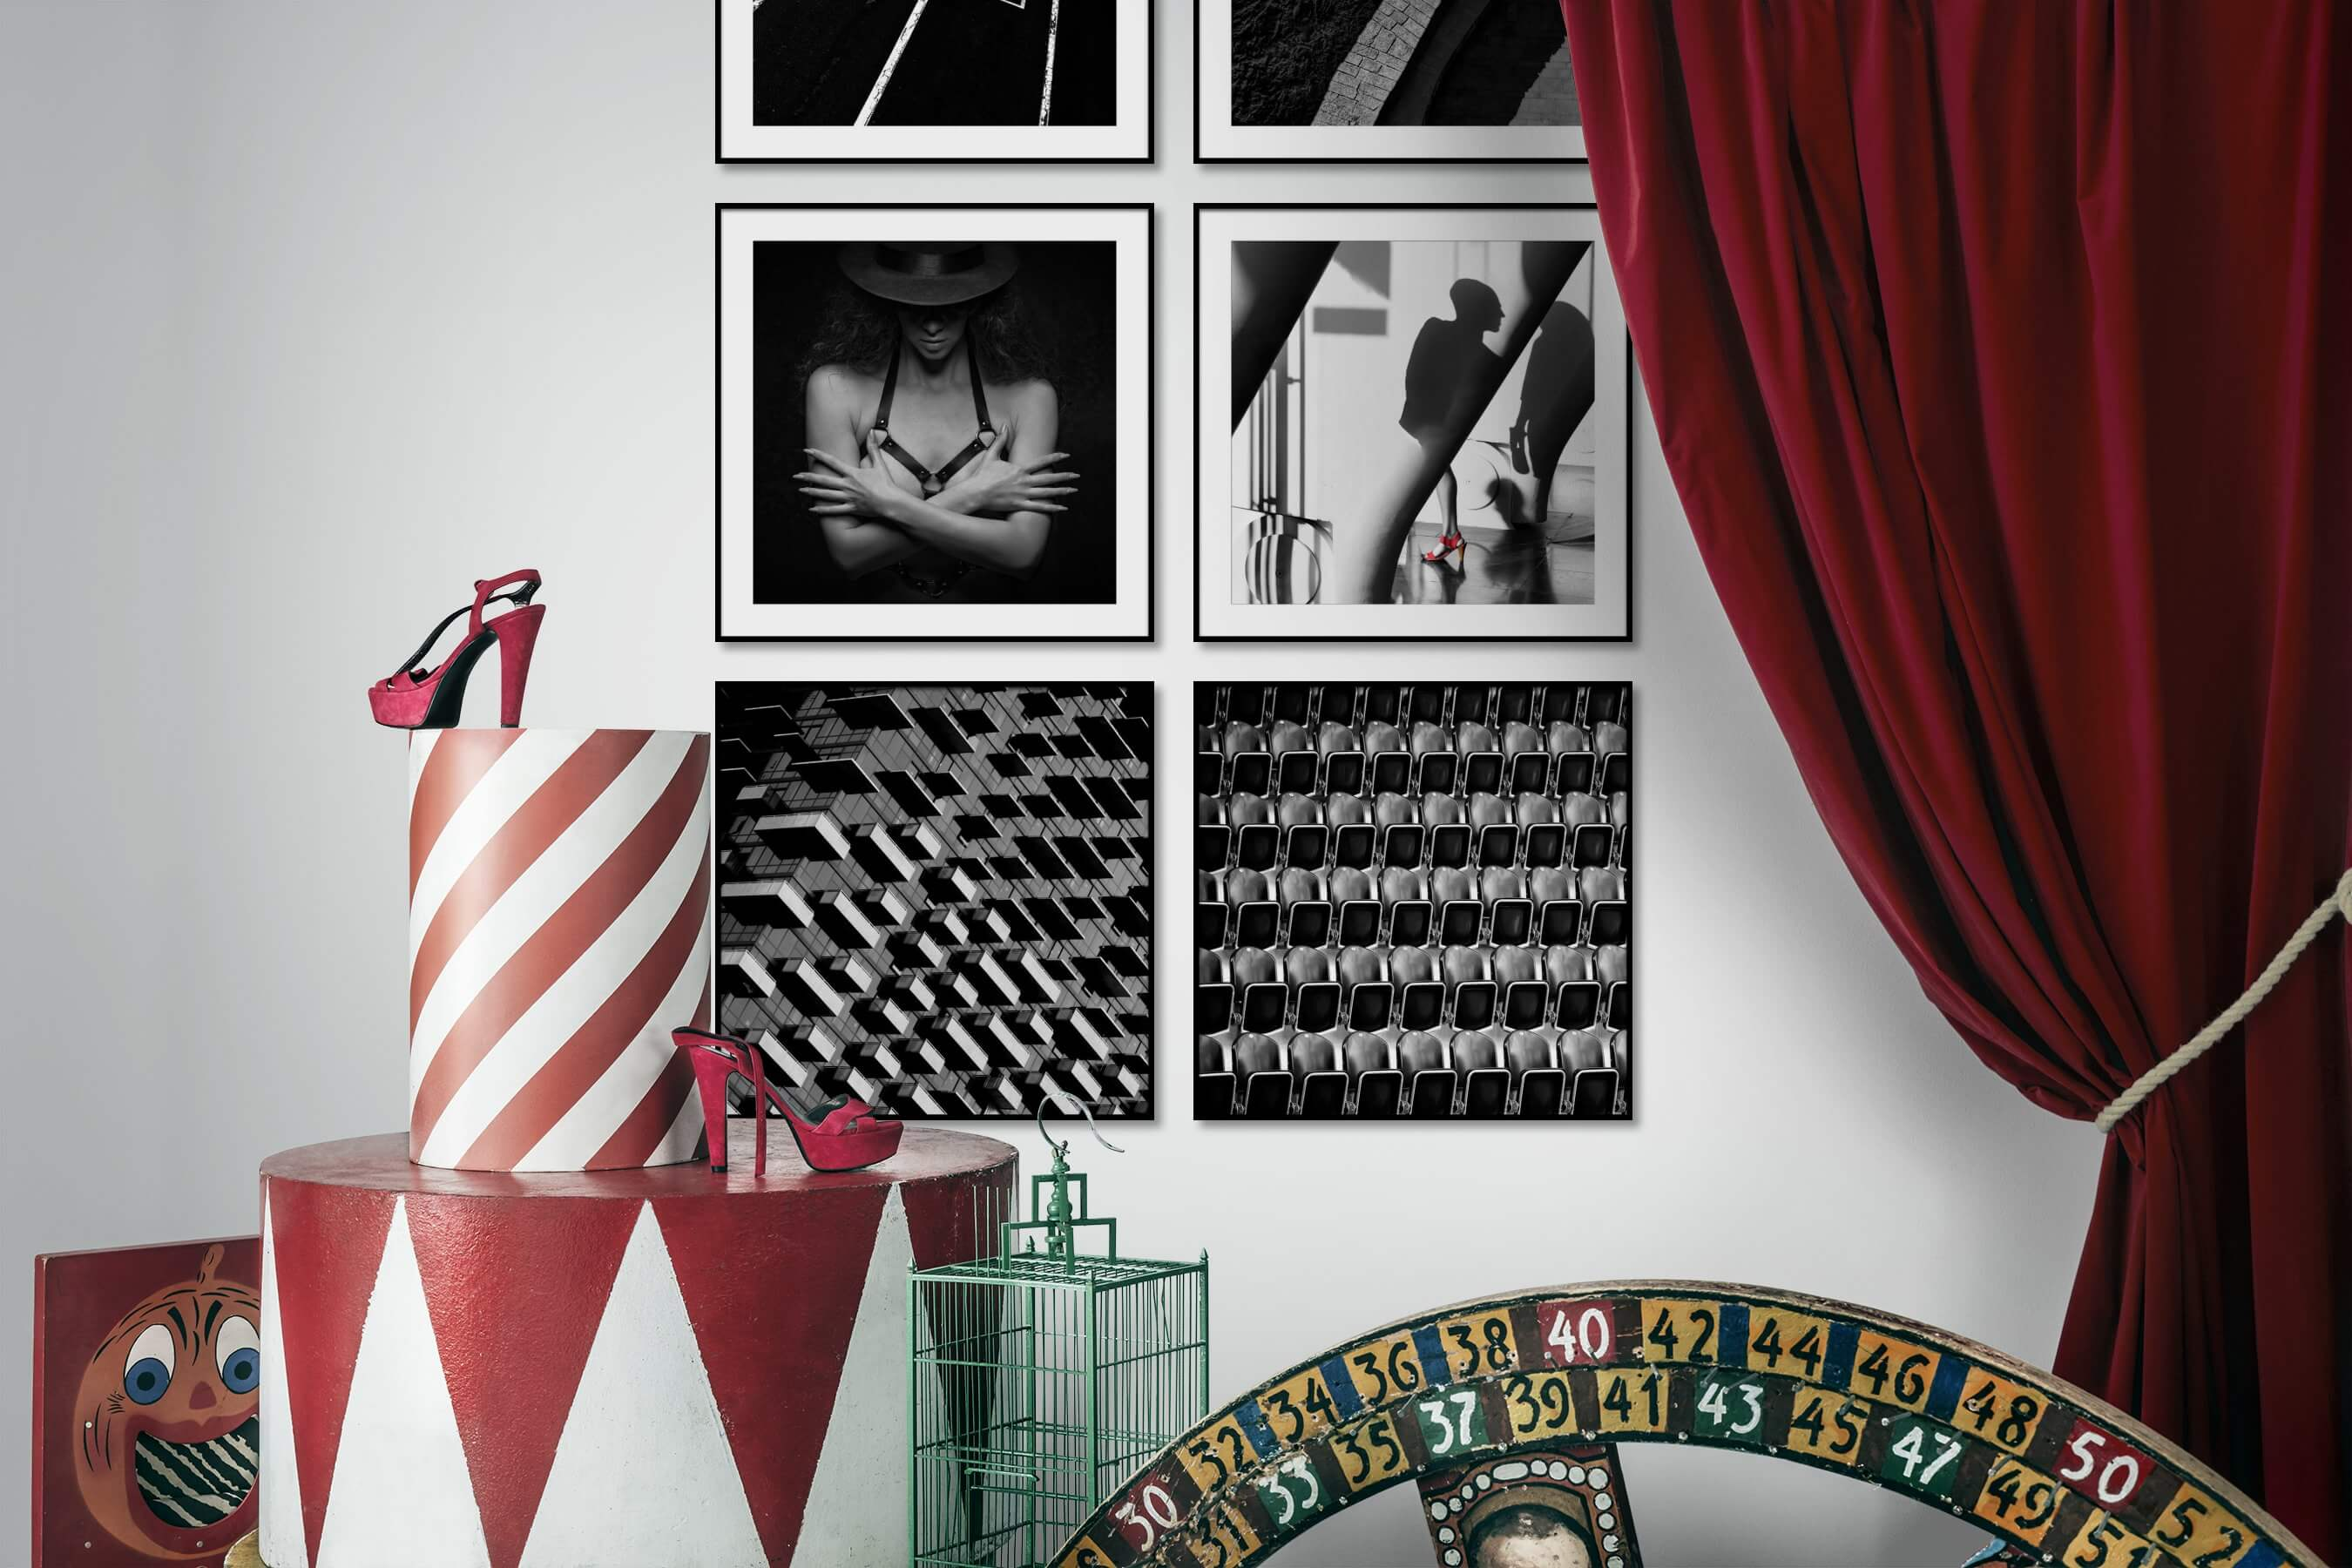 Gallery wall idea with six framed pictures arranged on a wall depicting Black & White, For the Moderate, Vintage, For the Minimalist, Beach & Water, Fashion & Beauty, City Life, and For the Maximalist